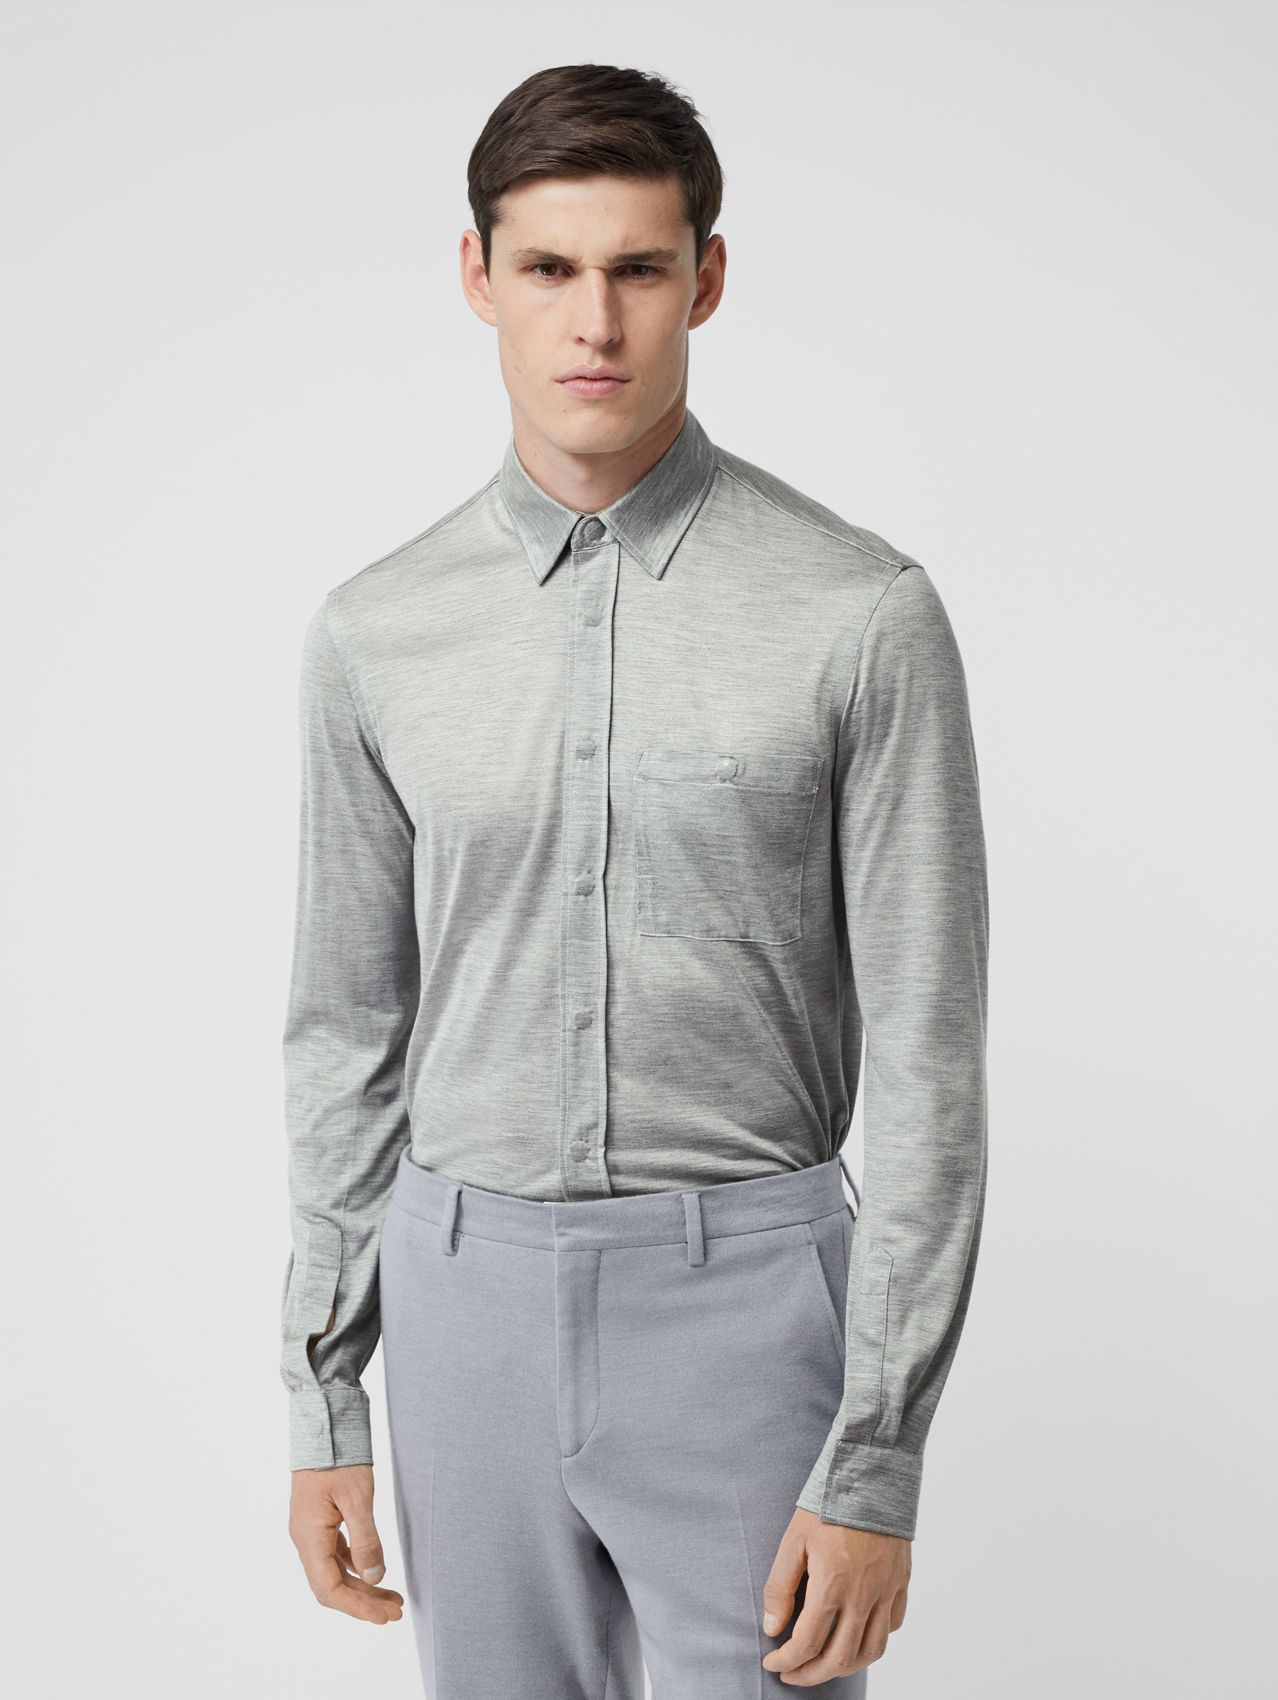 Classic Fit Silk Jersey Shirt in Light Pebble Grey